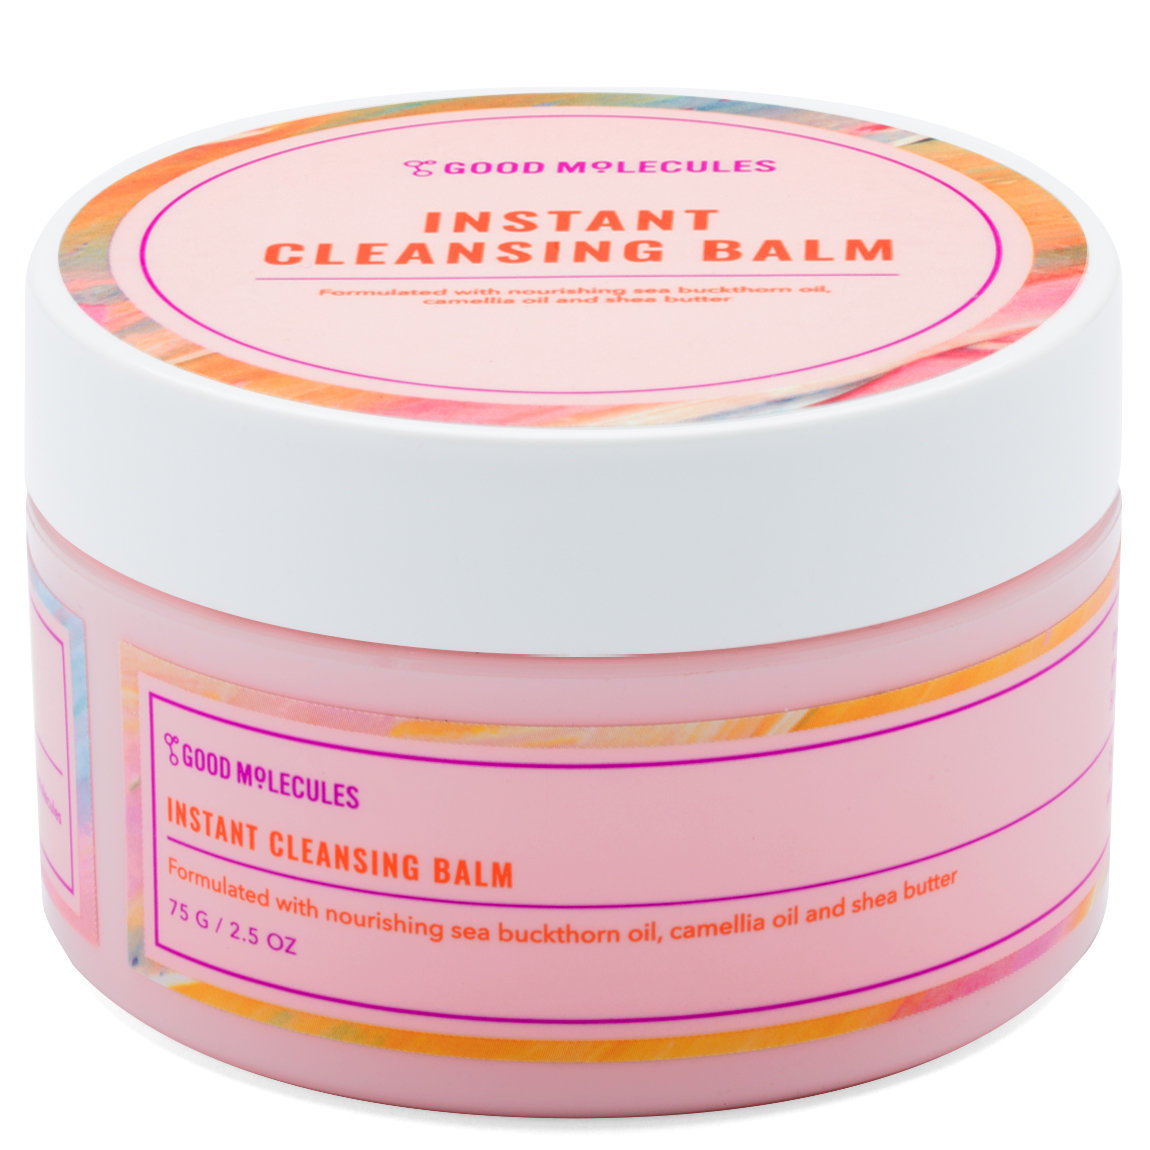 Good Molecules Instant Cleansing Balm 75 g product swatch.